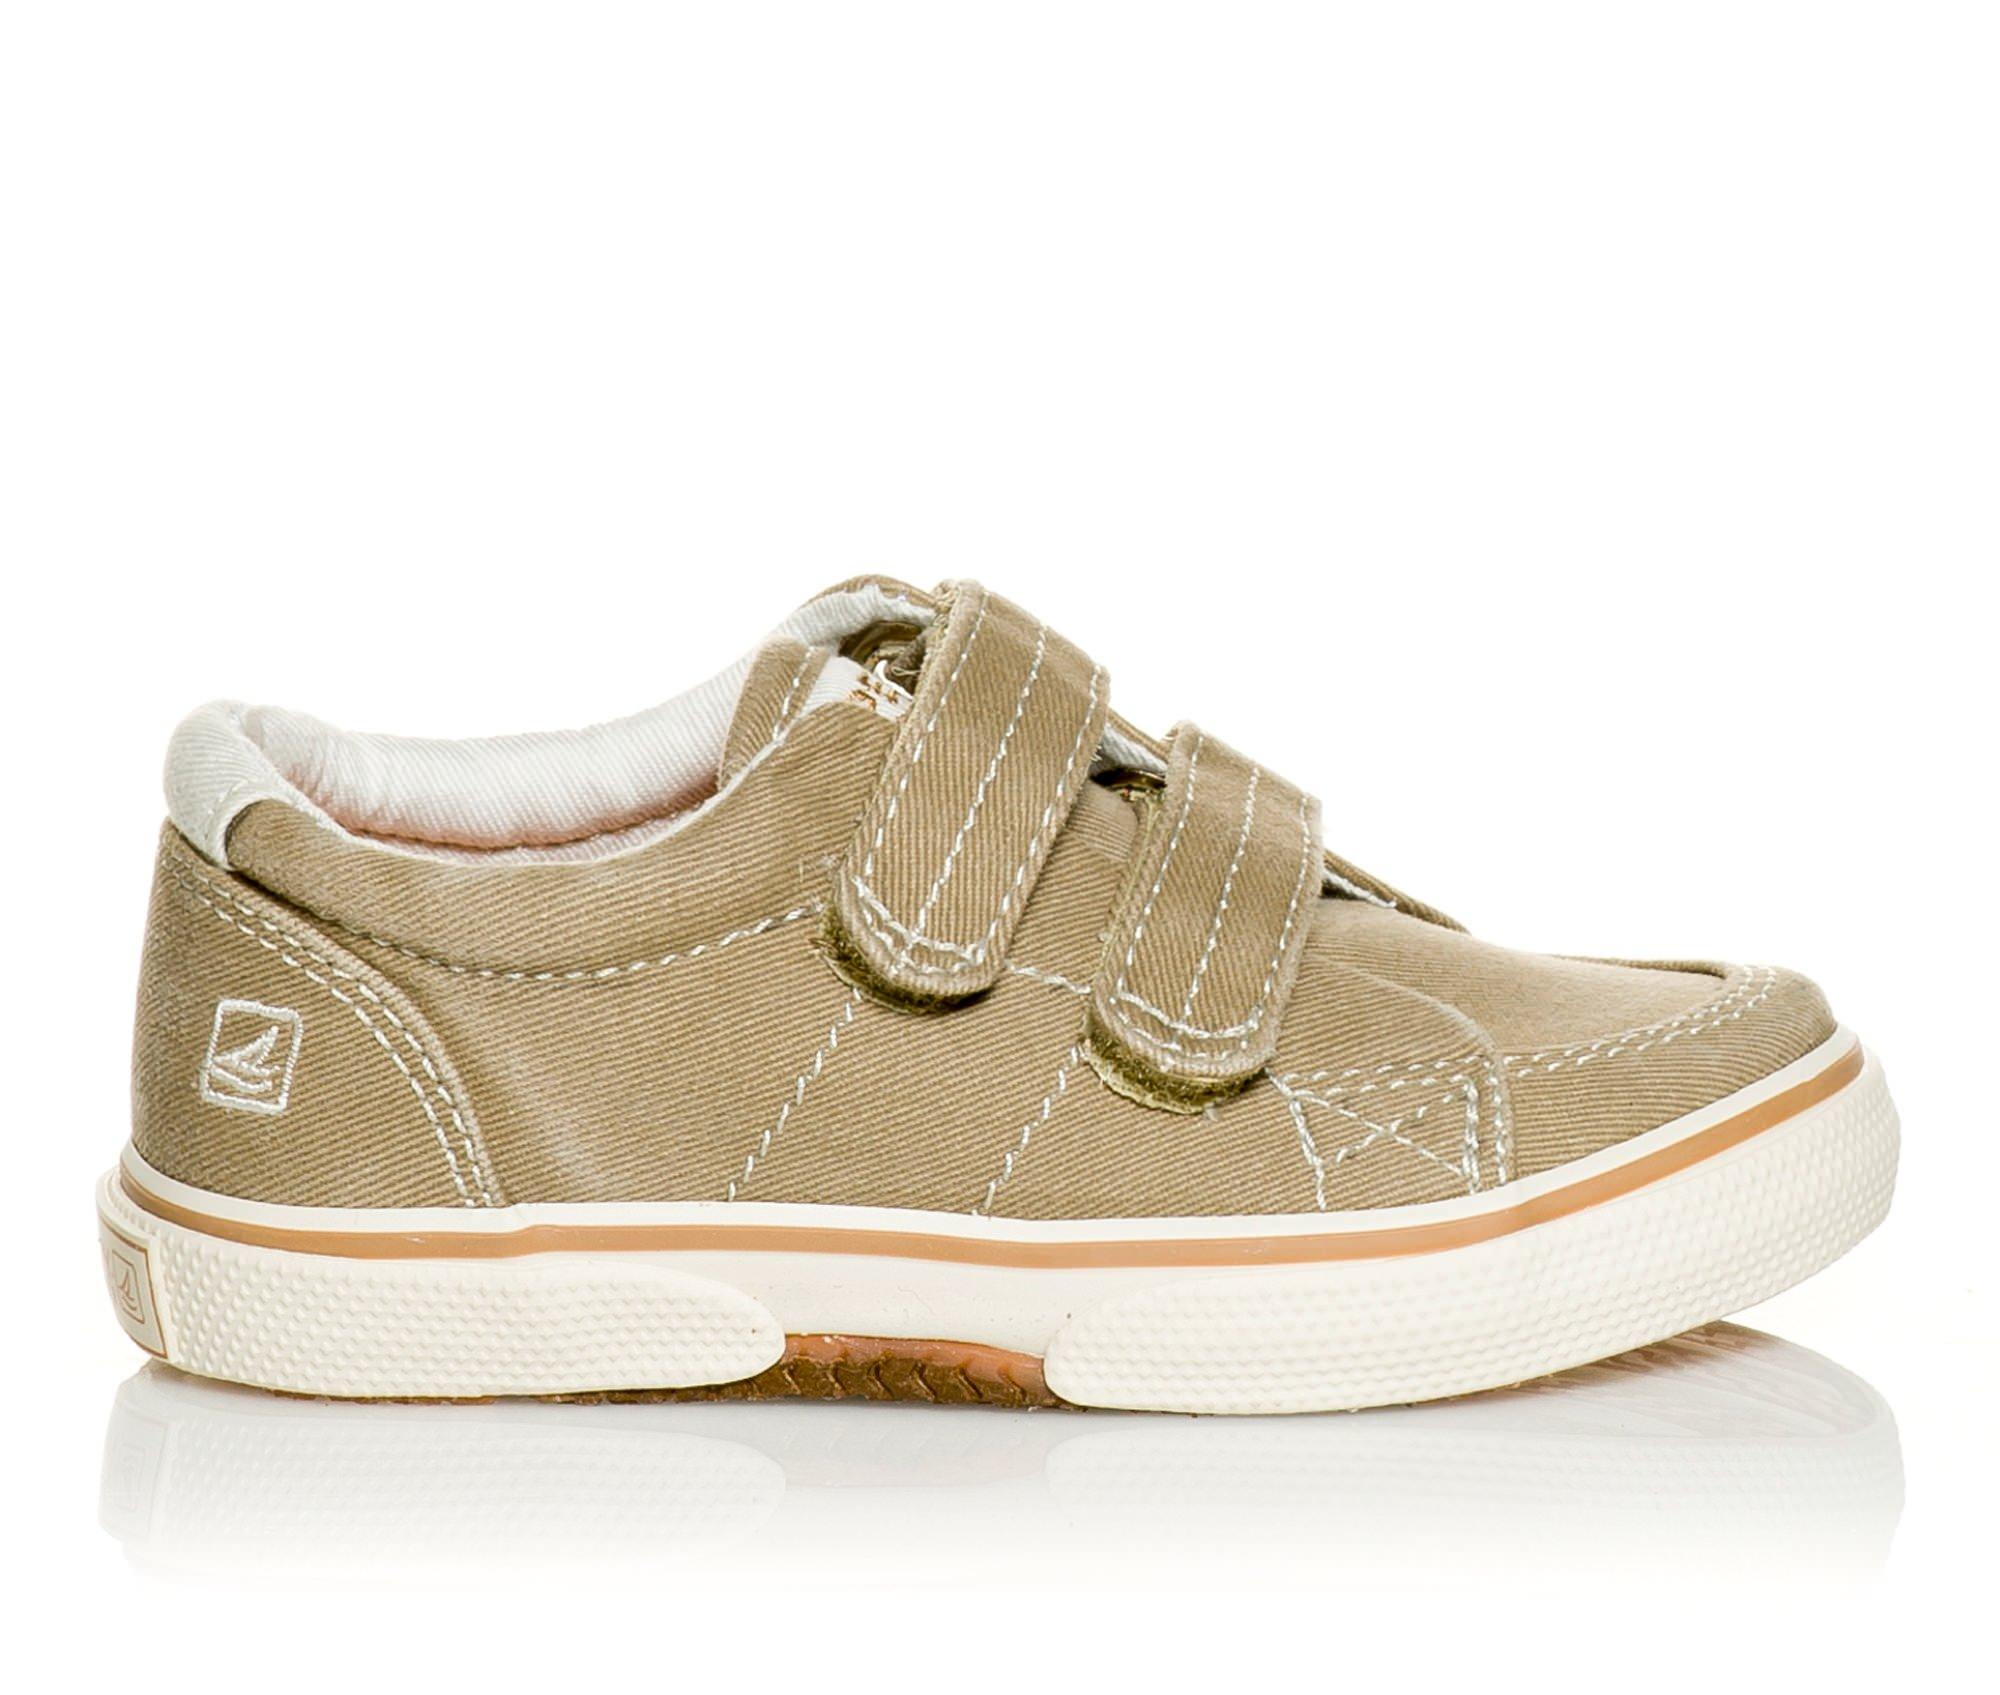 Boys' Sperry Infant Halyard H & L Sneakers (Beige)